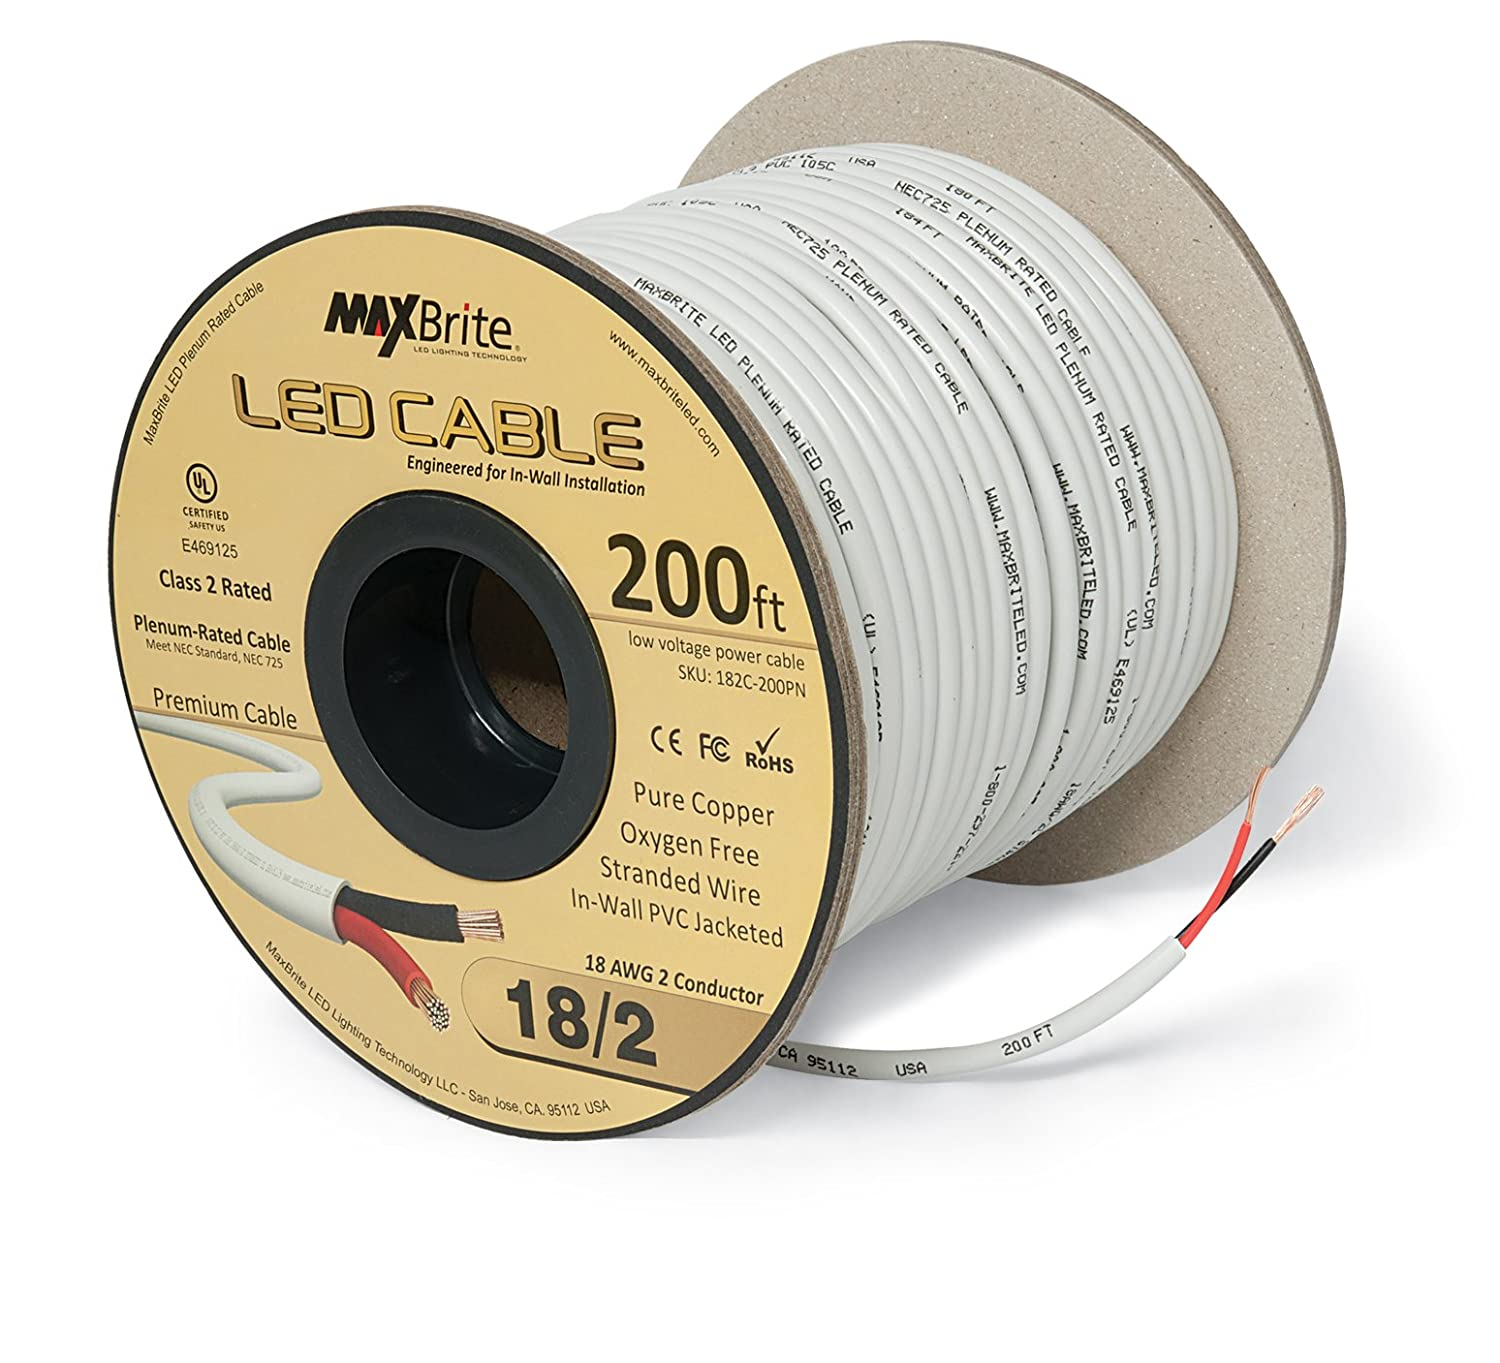 Amazon.com: 18AWG LED Cable/Speaker Wire 2 Conductor In-Wall Plenum Rated Jacketed, Low Voltage Wiring, UL Class 2 Certified - 200 ft spool: Home ...